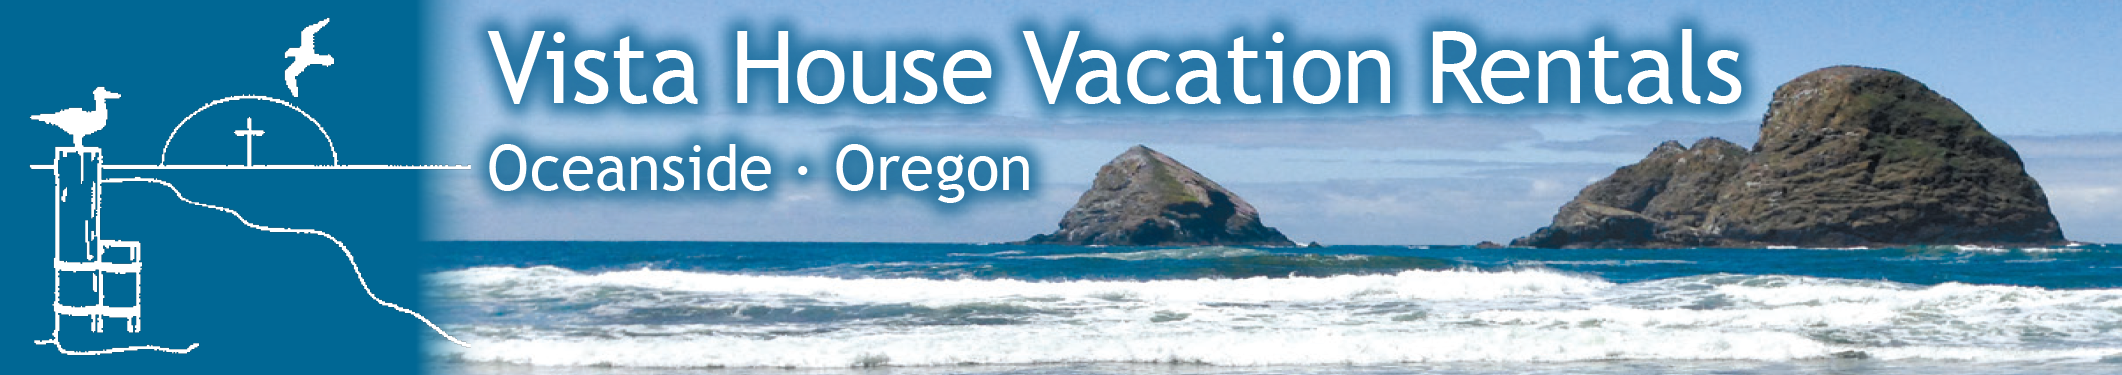 Vista House Vacation Rentals